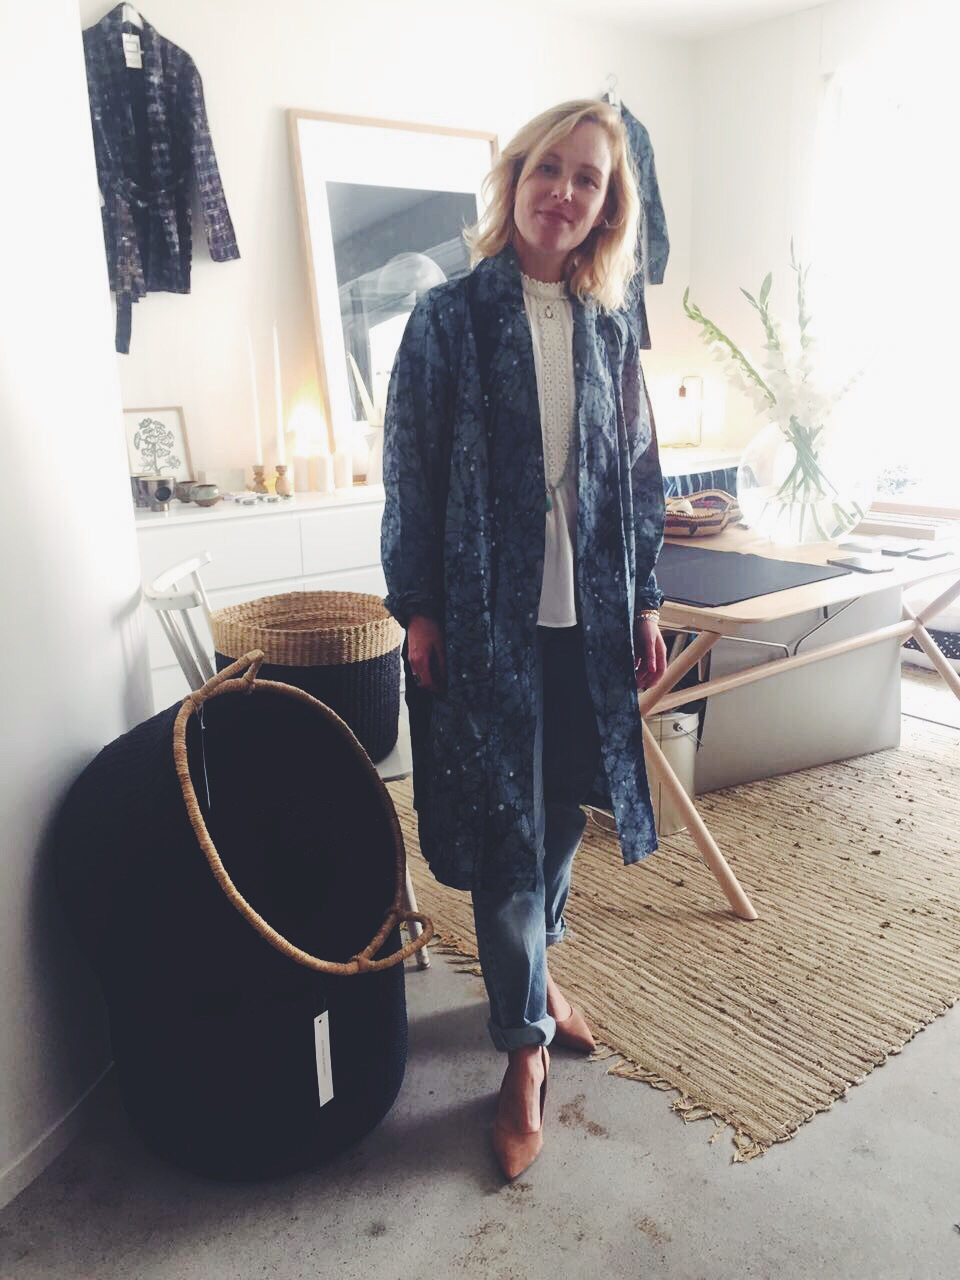 Constellation Kimono Ghana Indigo Spirit Collection KathrinEckhardtxBurninglights, baskets KathrinEckhardt